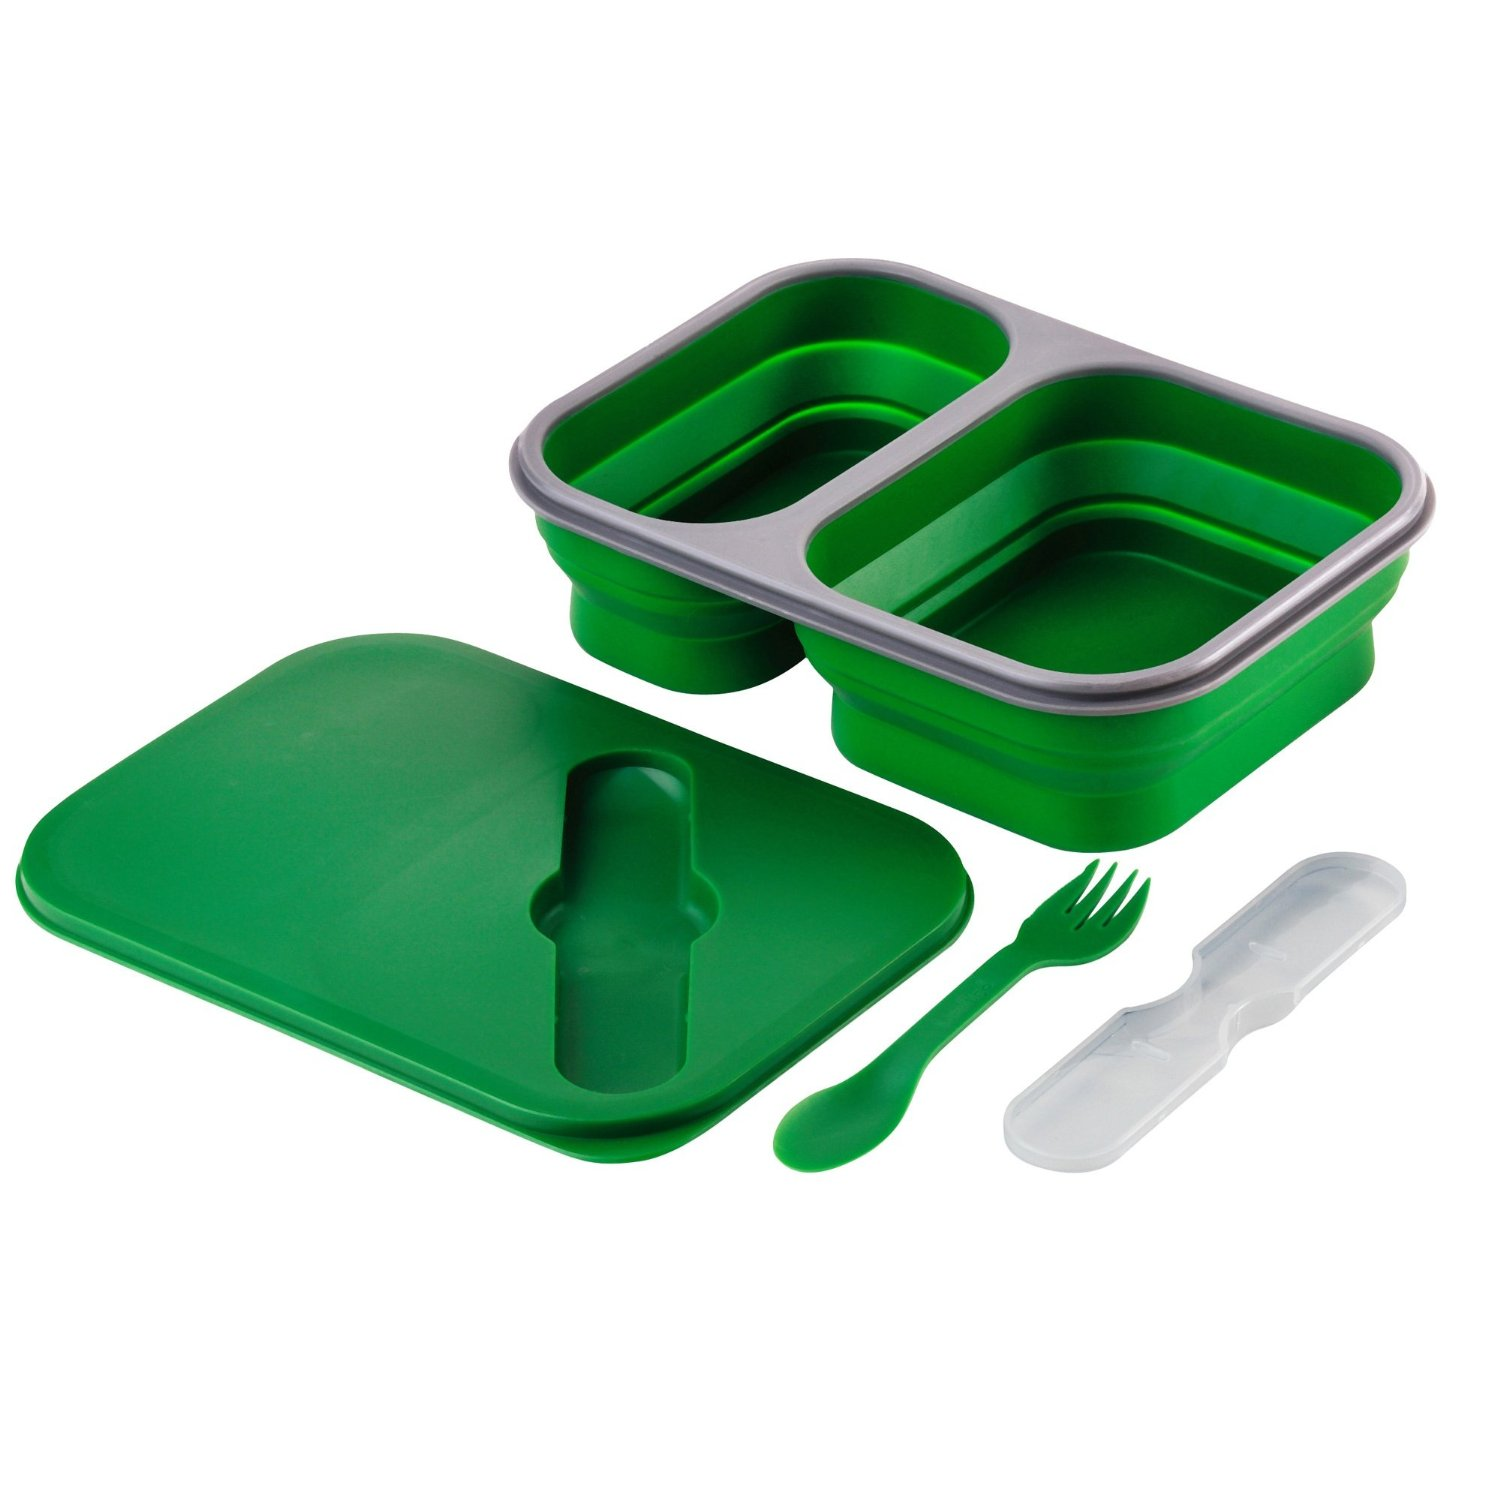 Foldable lunch containers clipart for preschoolers.